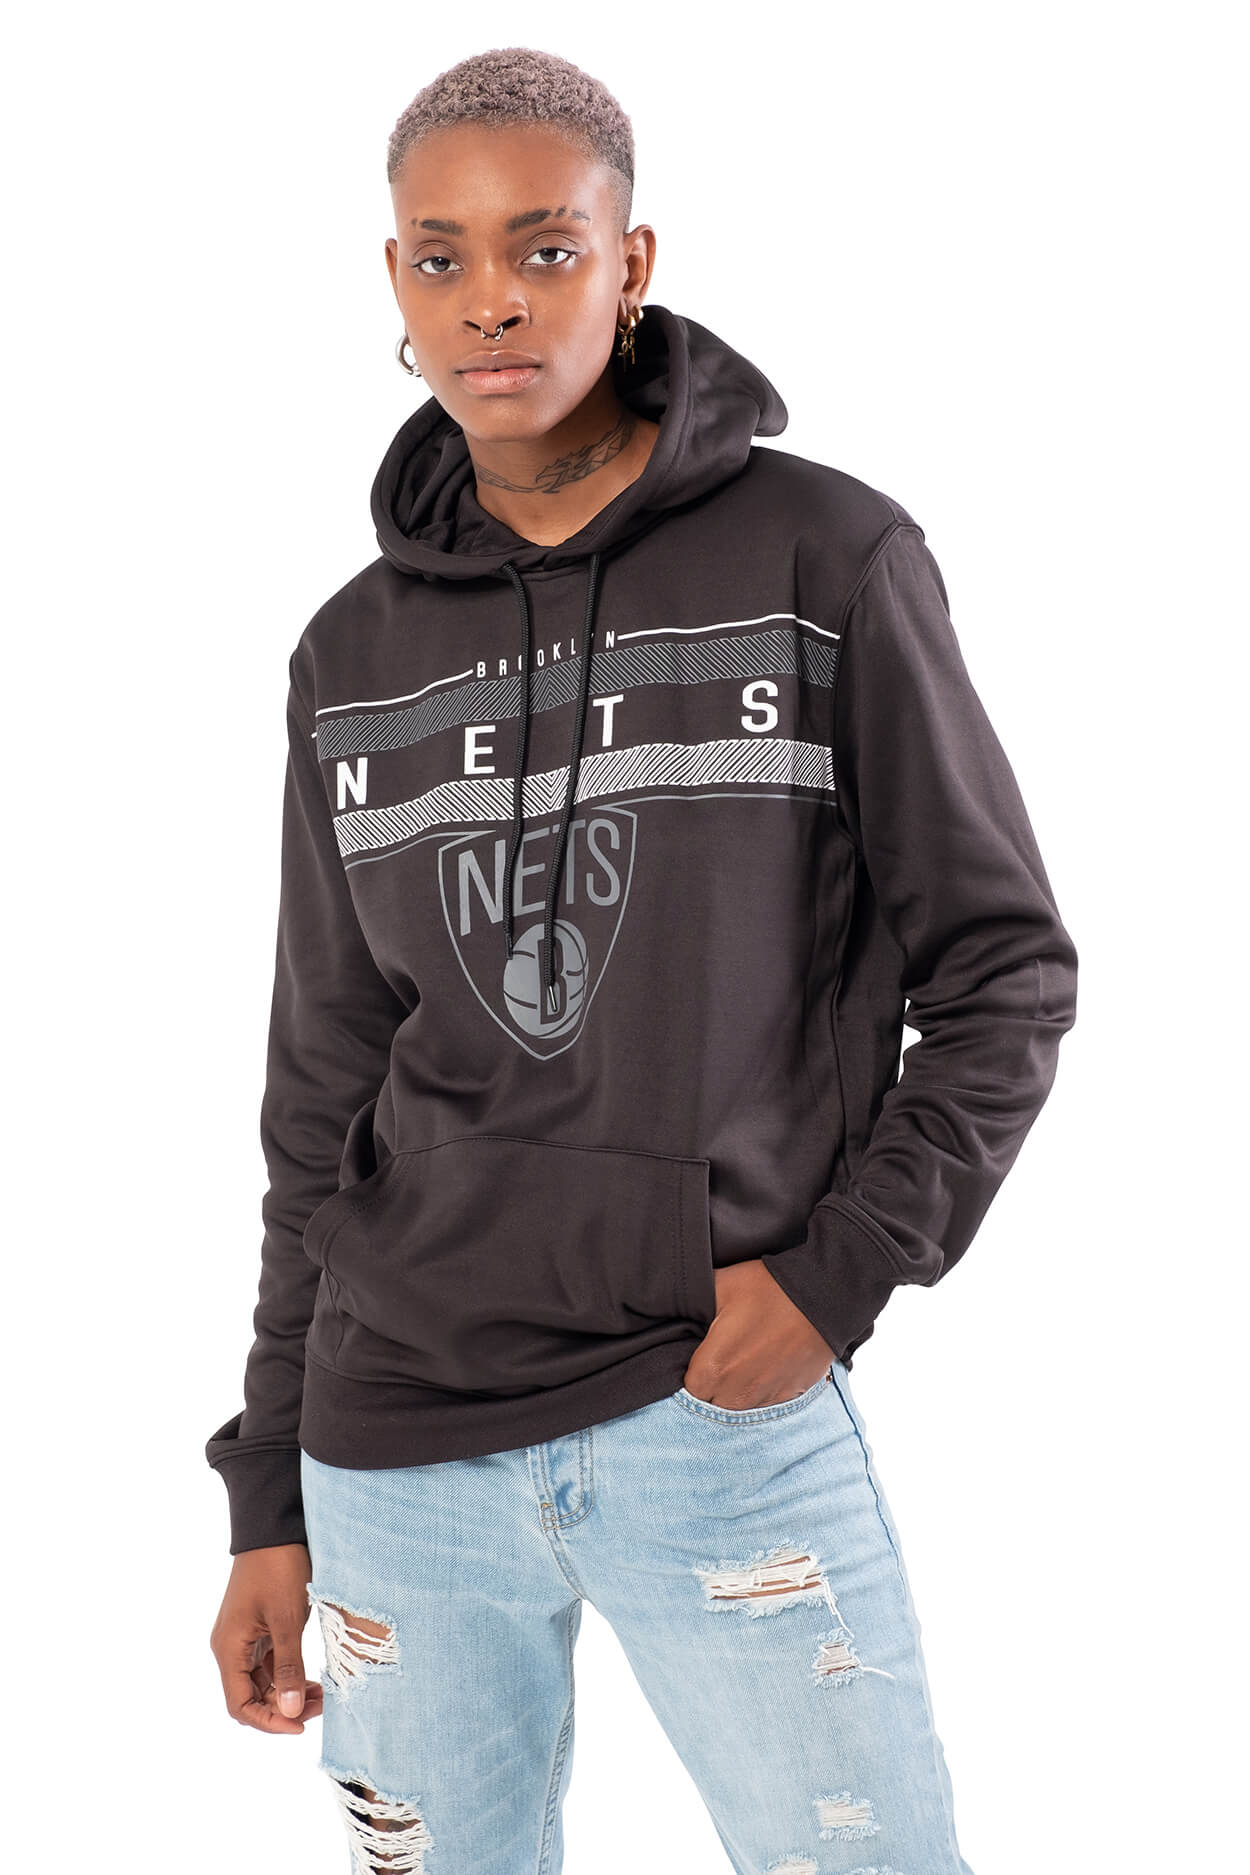 NBA Brooklyn Nets Men's Fleece Hoodie Midtown|Brooklyn Nets